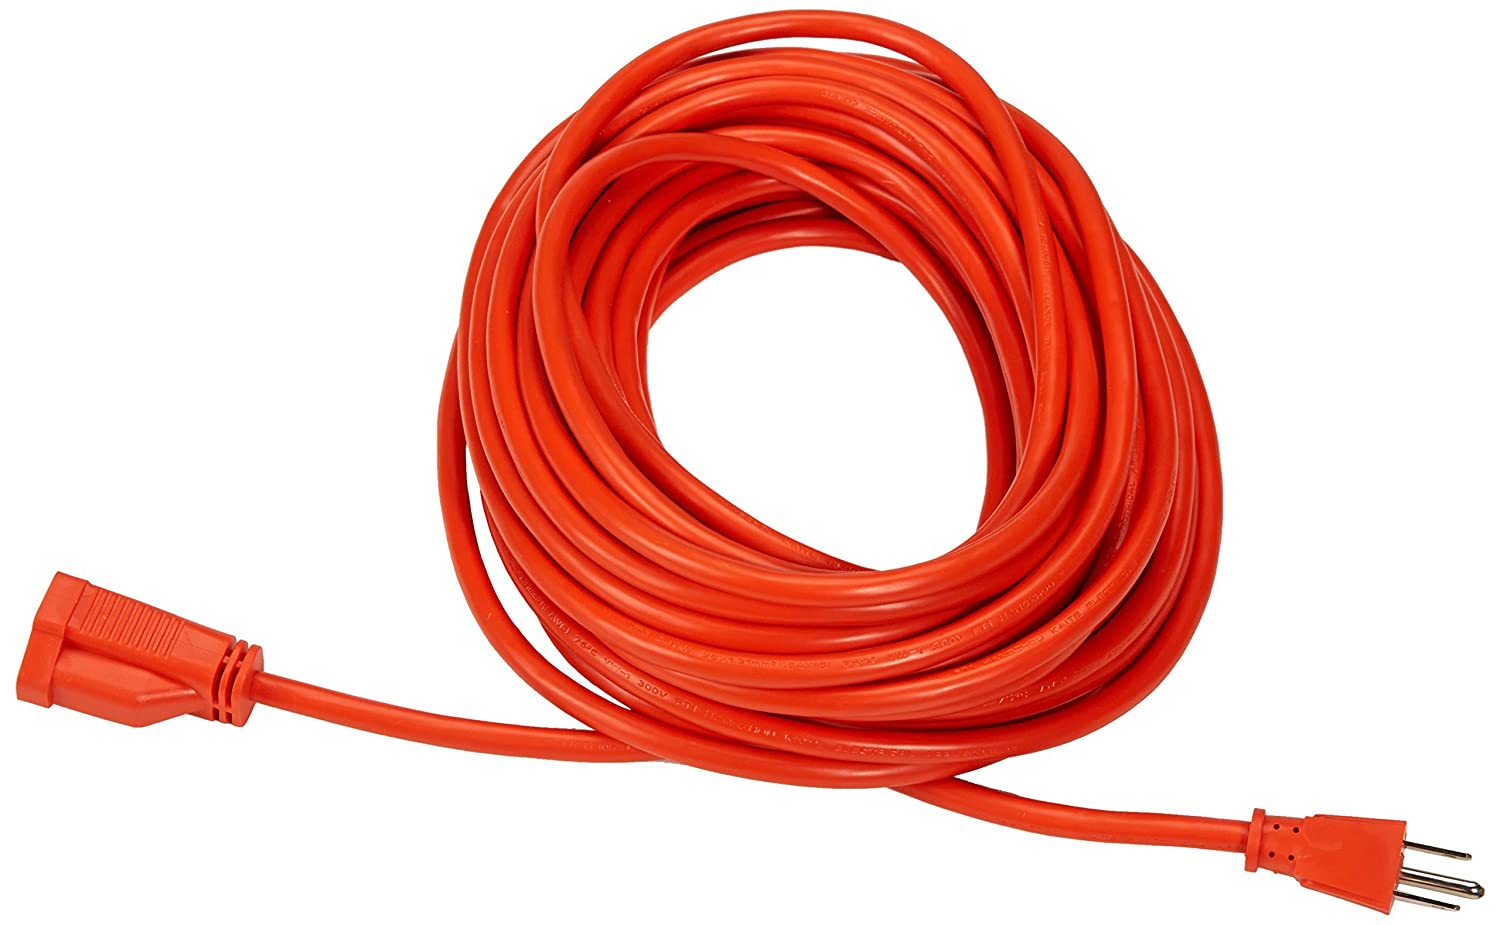 AmazonBasics 16 3 Vinyl Outdoor Extension Cord 50 Feet Orange